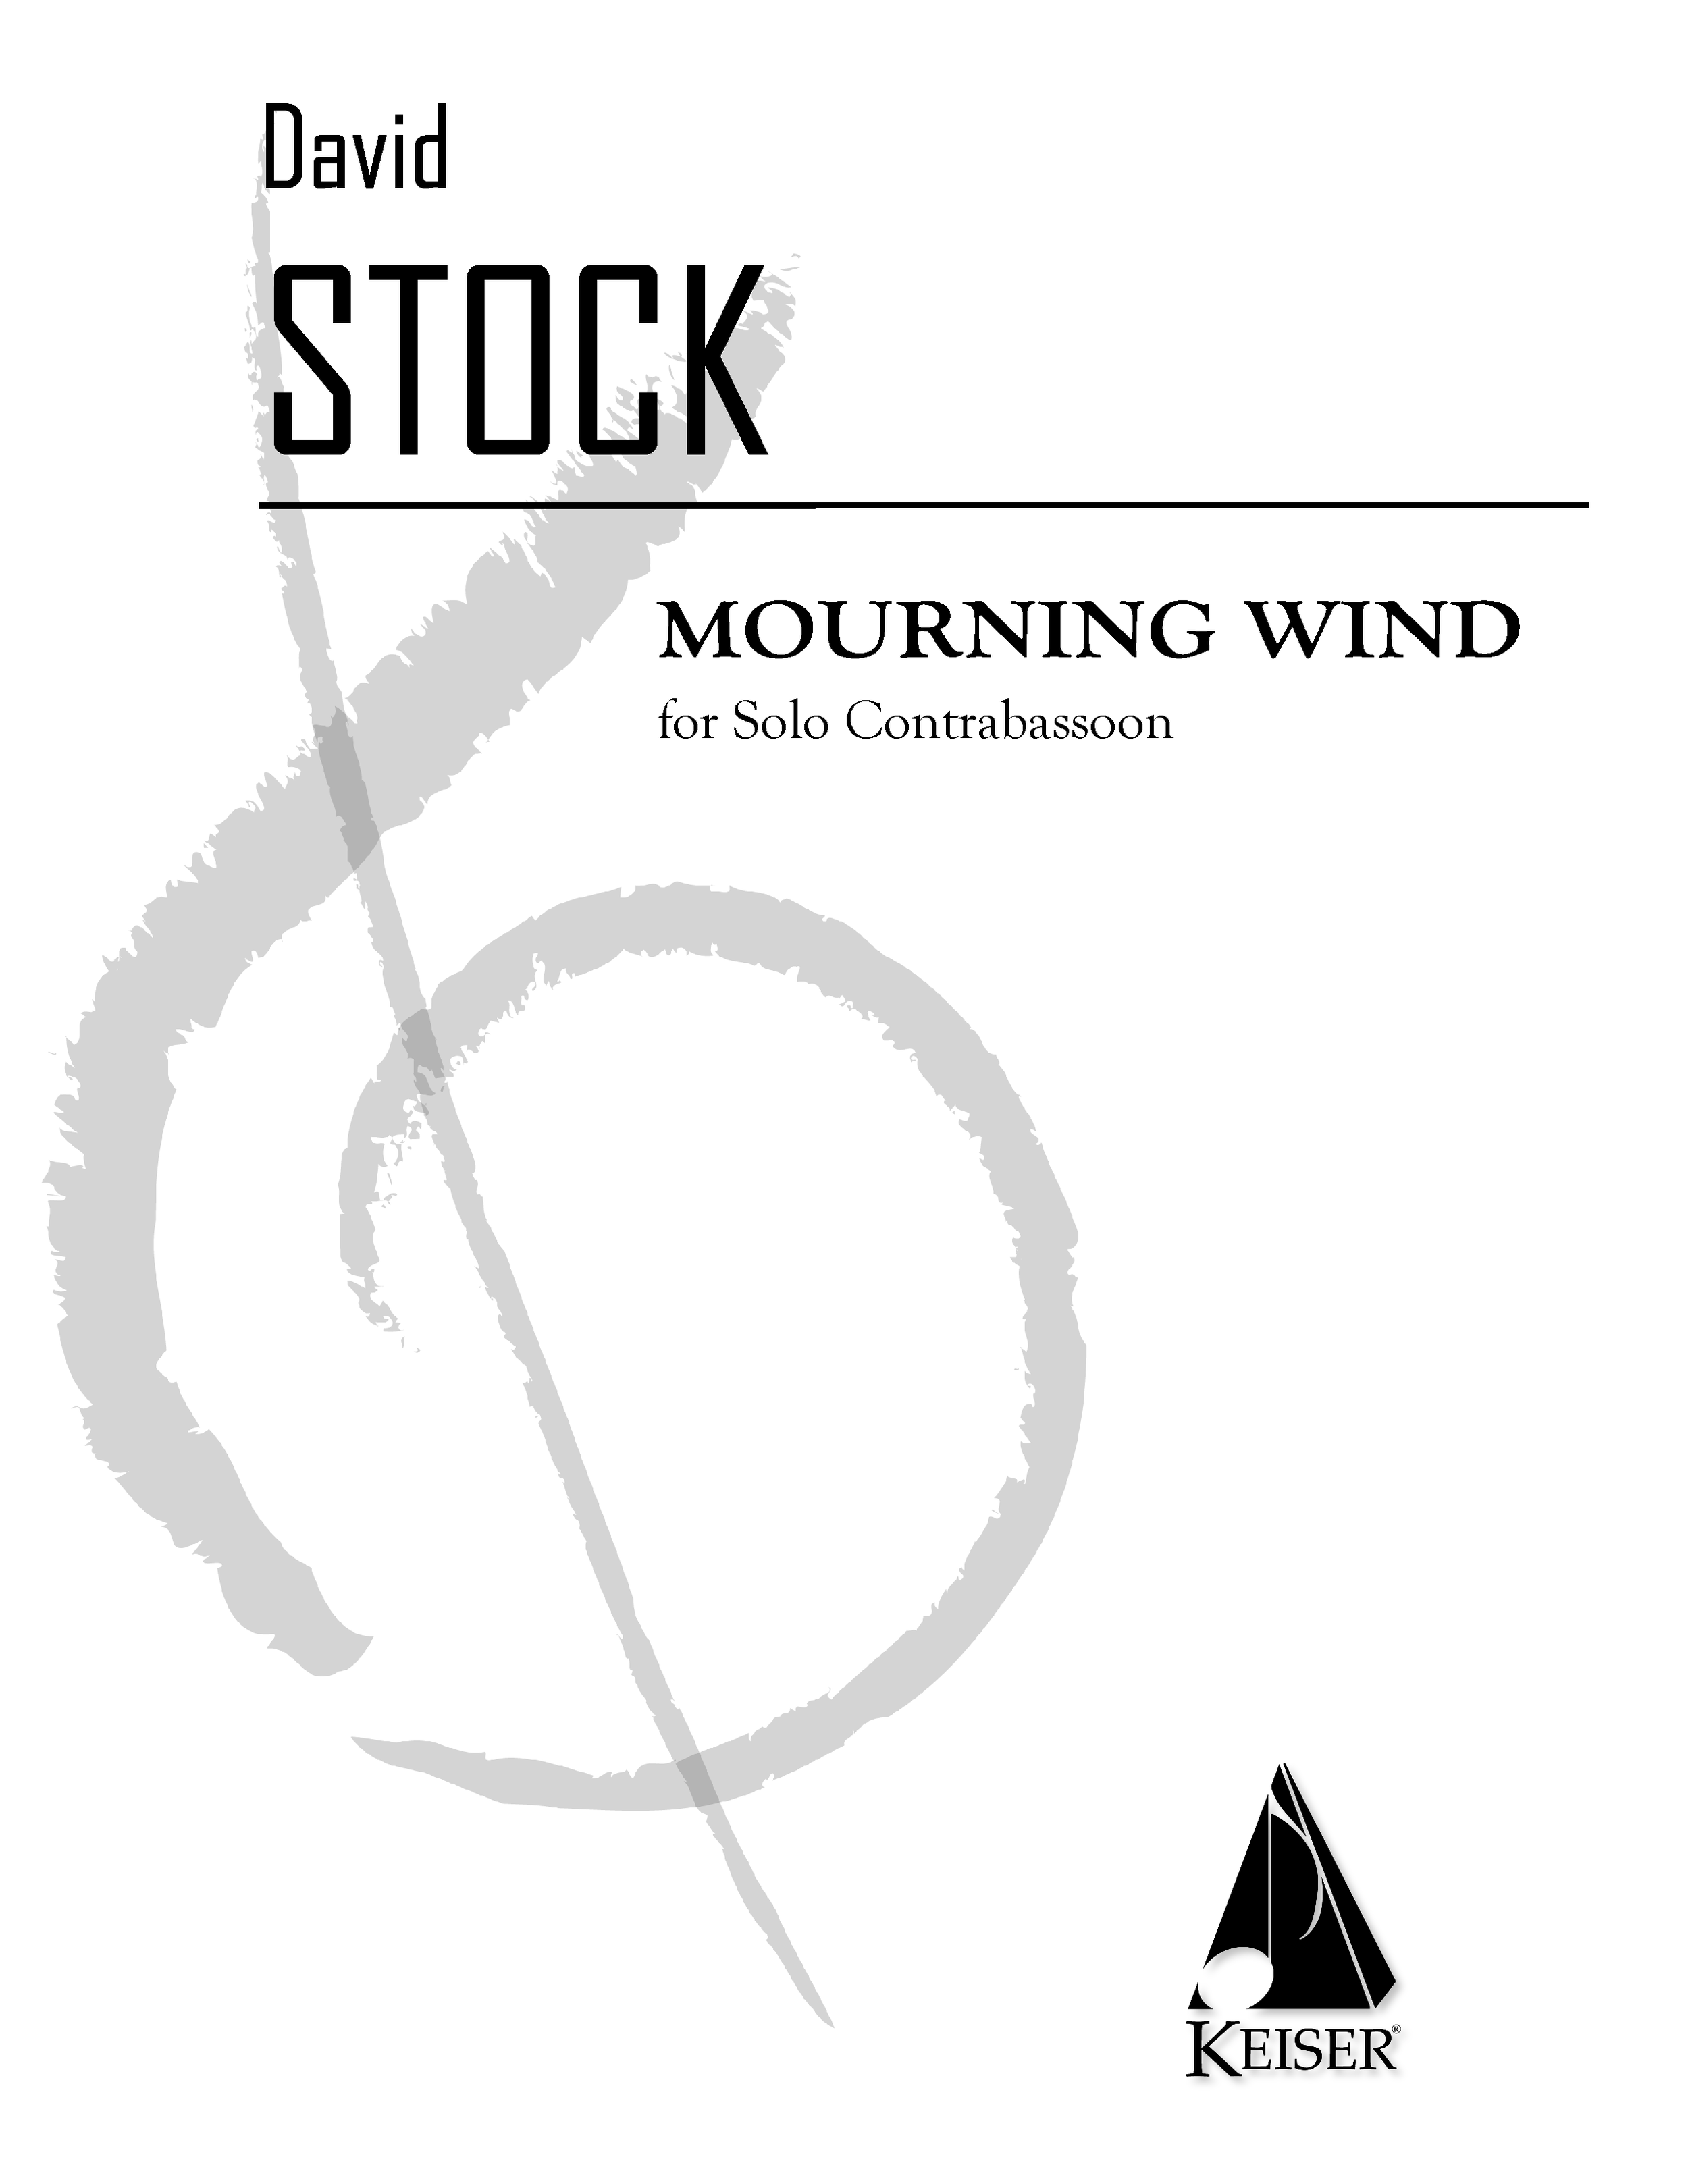 Mourning Wind (2007)  - Solo ContrabassoonRent/Buy: Keiser Music